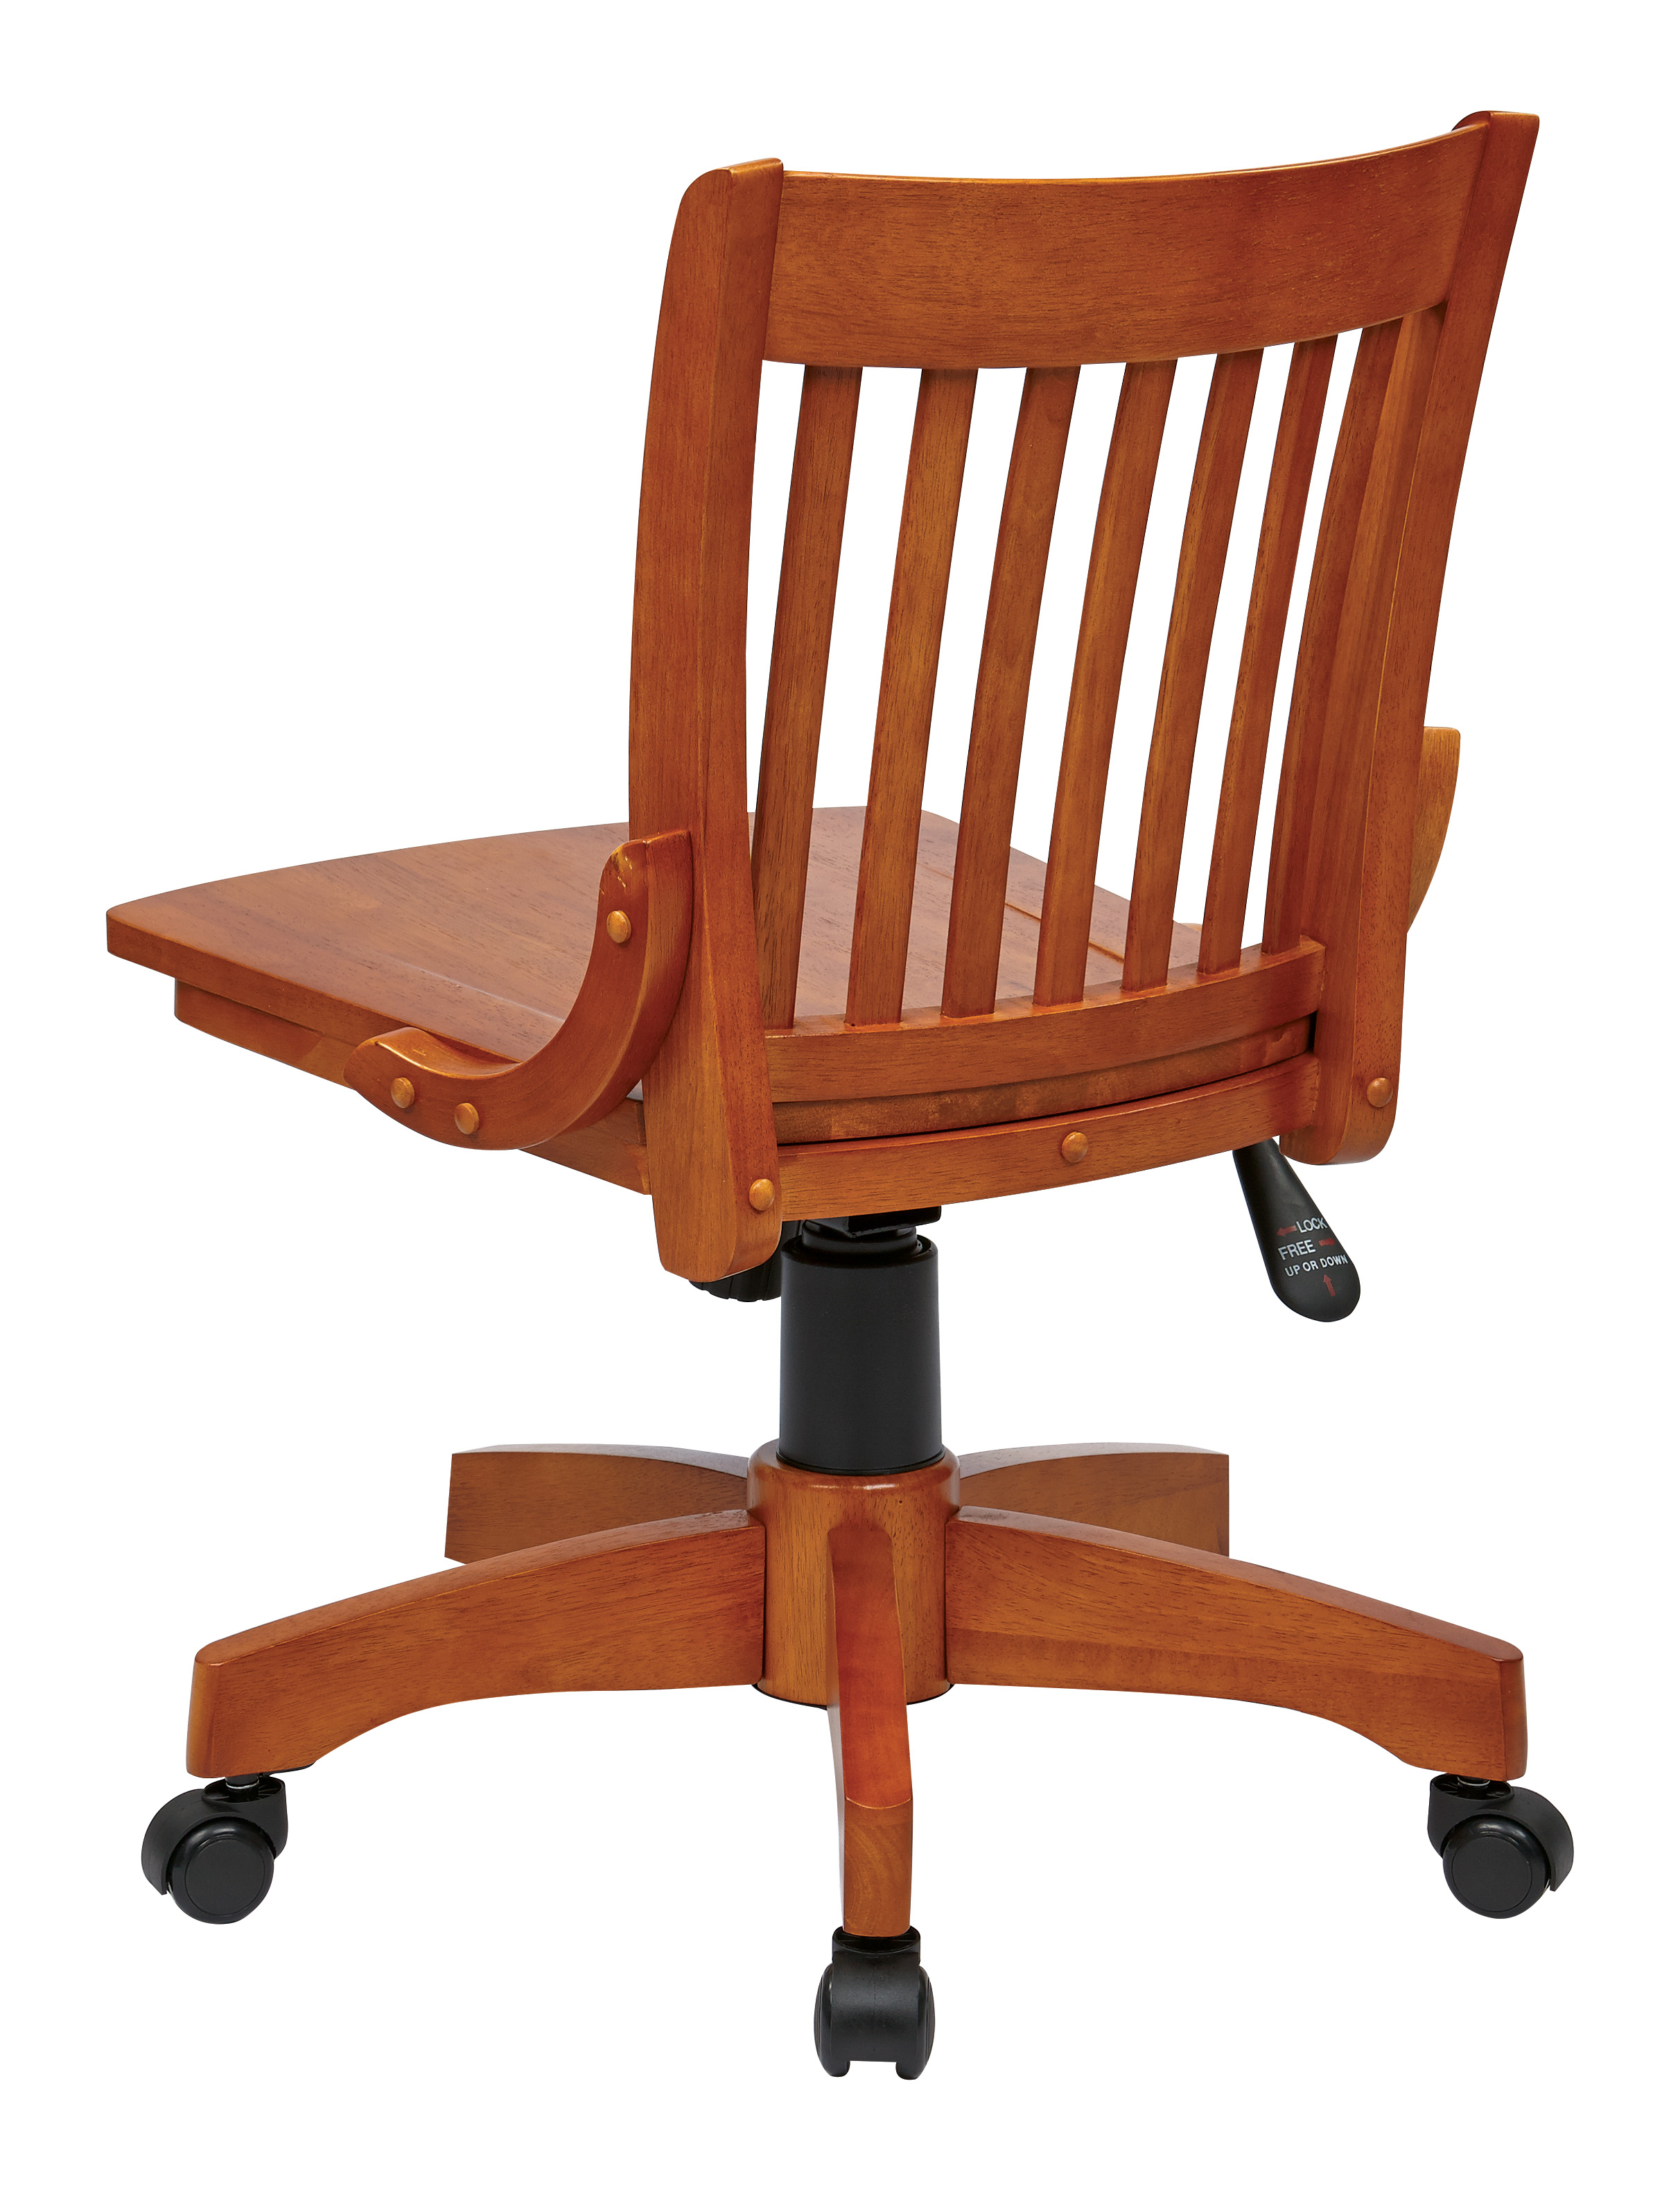 Strange Office Star Deluxe Armless Bankers Desk Chair With Wood Seat Machost Co Dining Chair Design Ideas Machostcouk